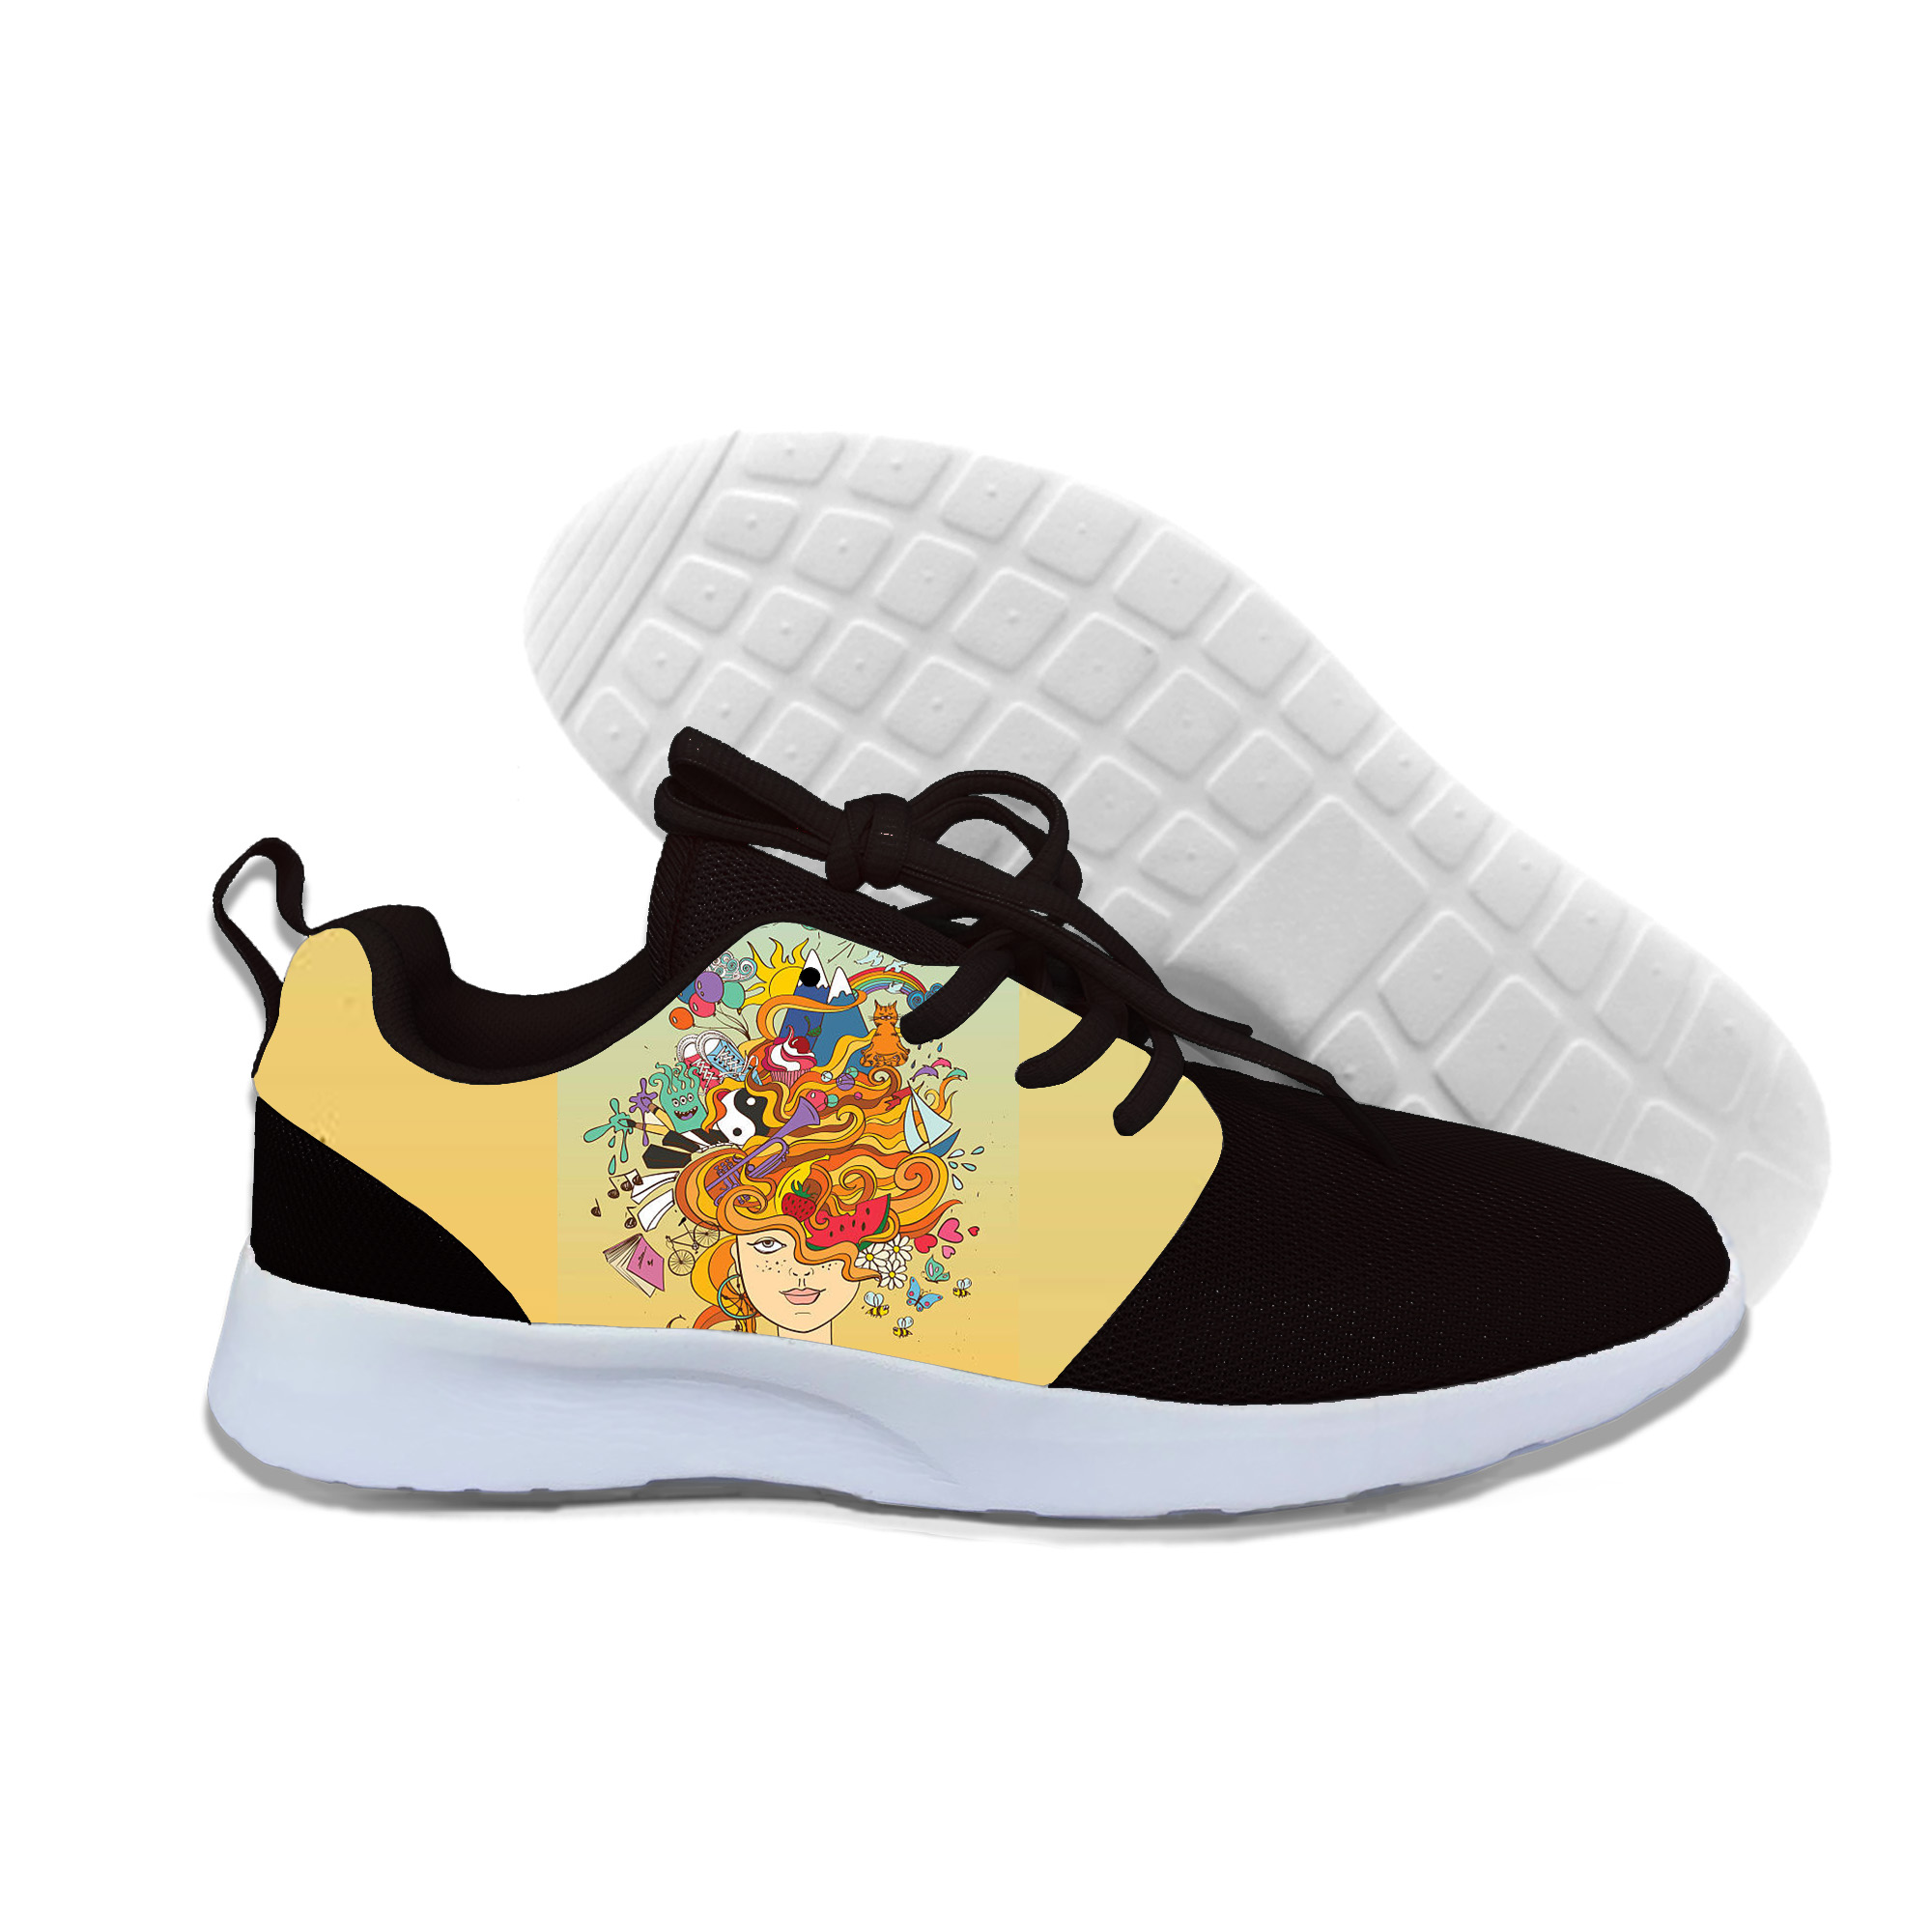 2019 Hot Fashion 3D Shoes For Women/Men Hand painted head Casual Lightweight Sneakers Unisex